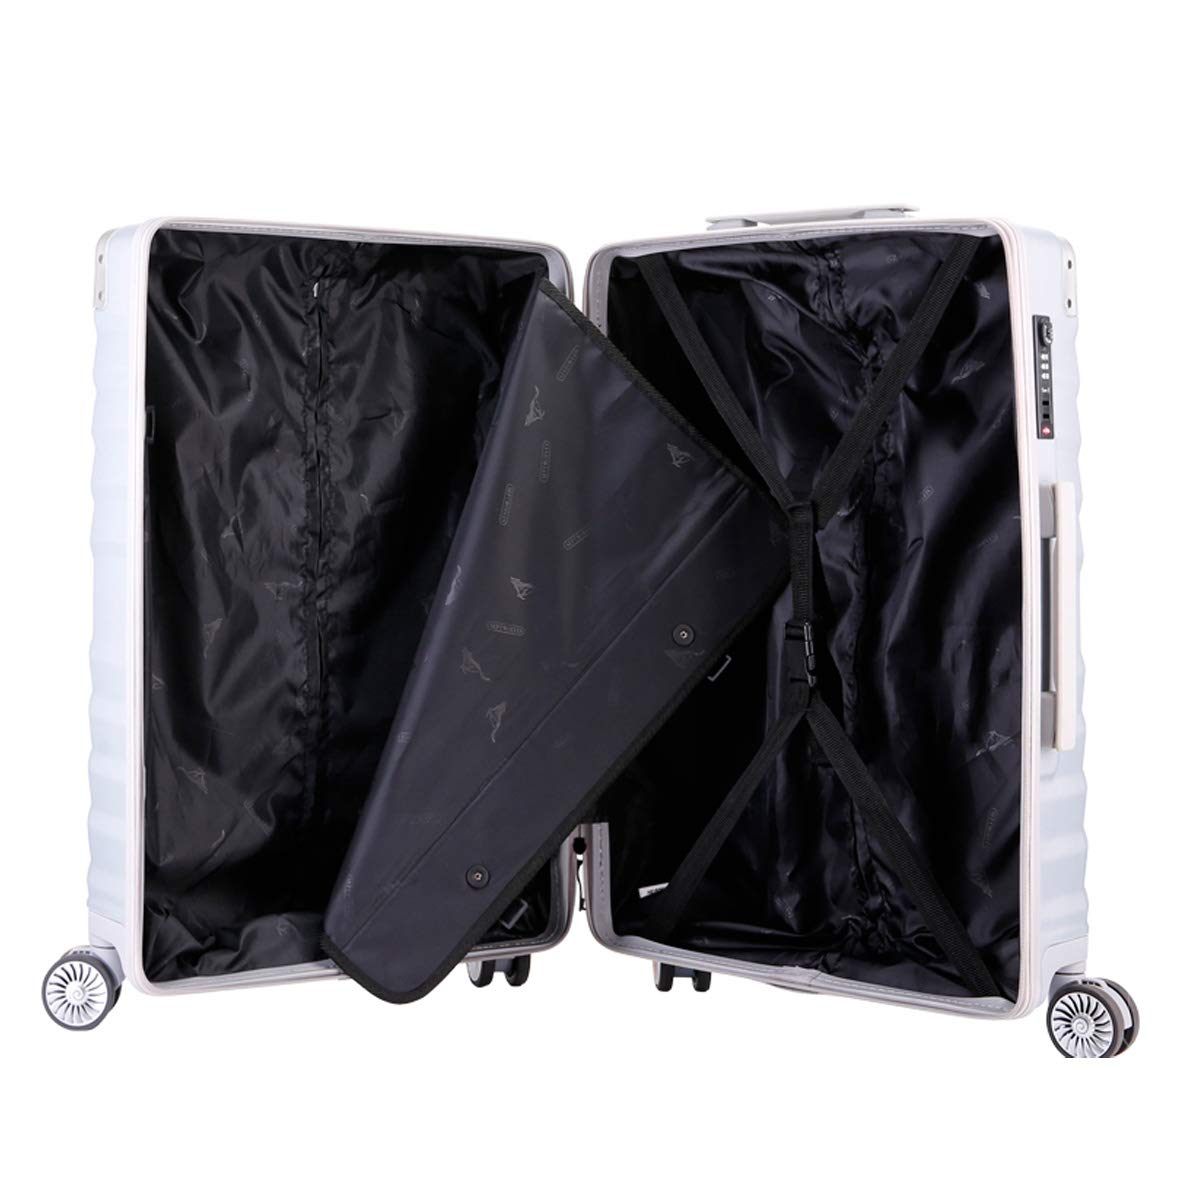 Travel Organizer Bahaowenjuguan Travel Bag Student Password Box Simple and Color : Pink, Size : 20 20//24 inch Silver Hard Trolley case